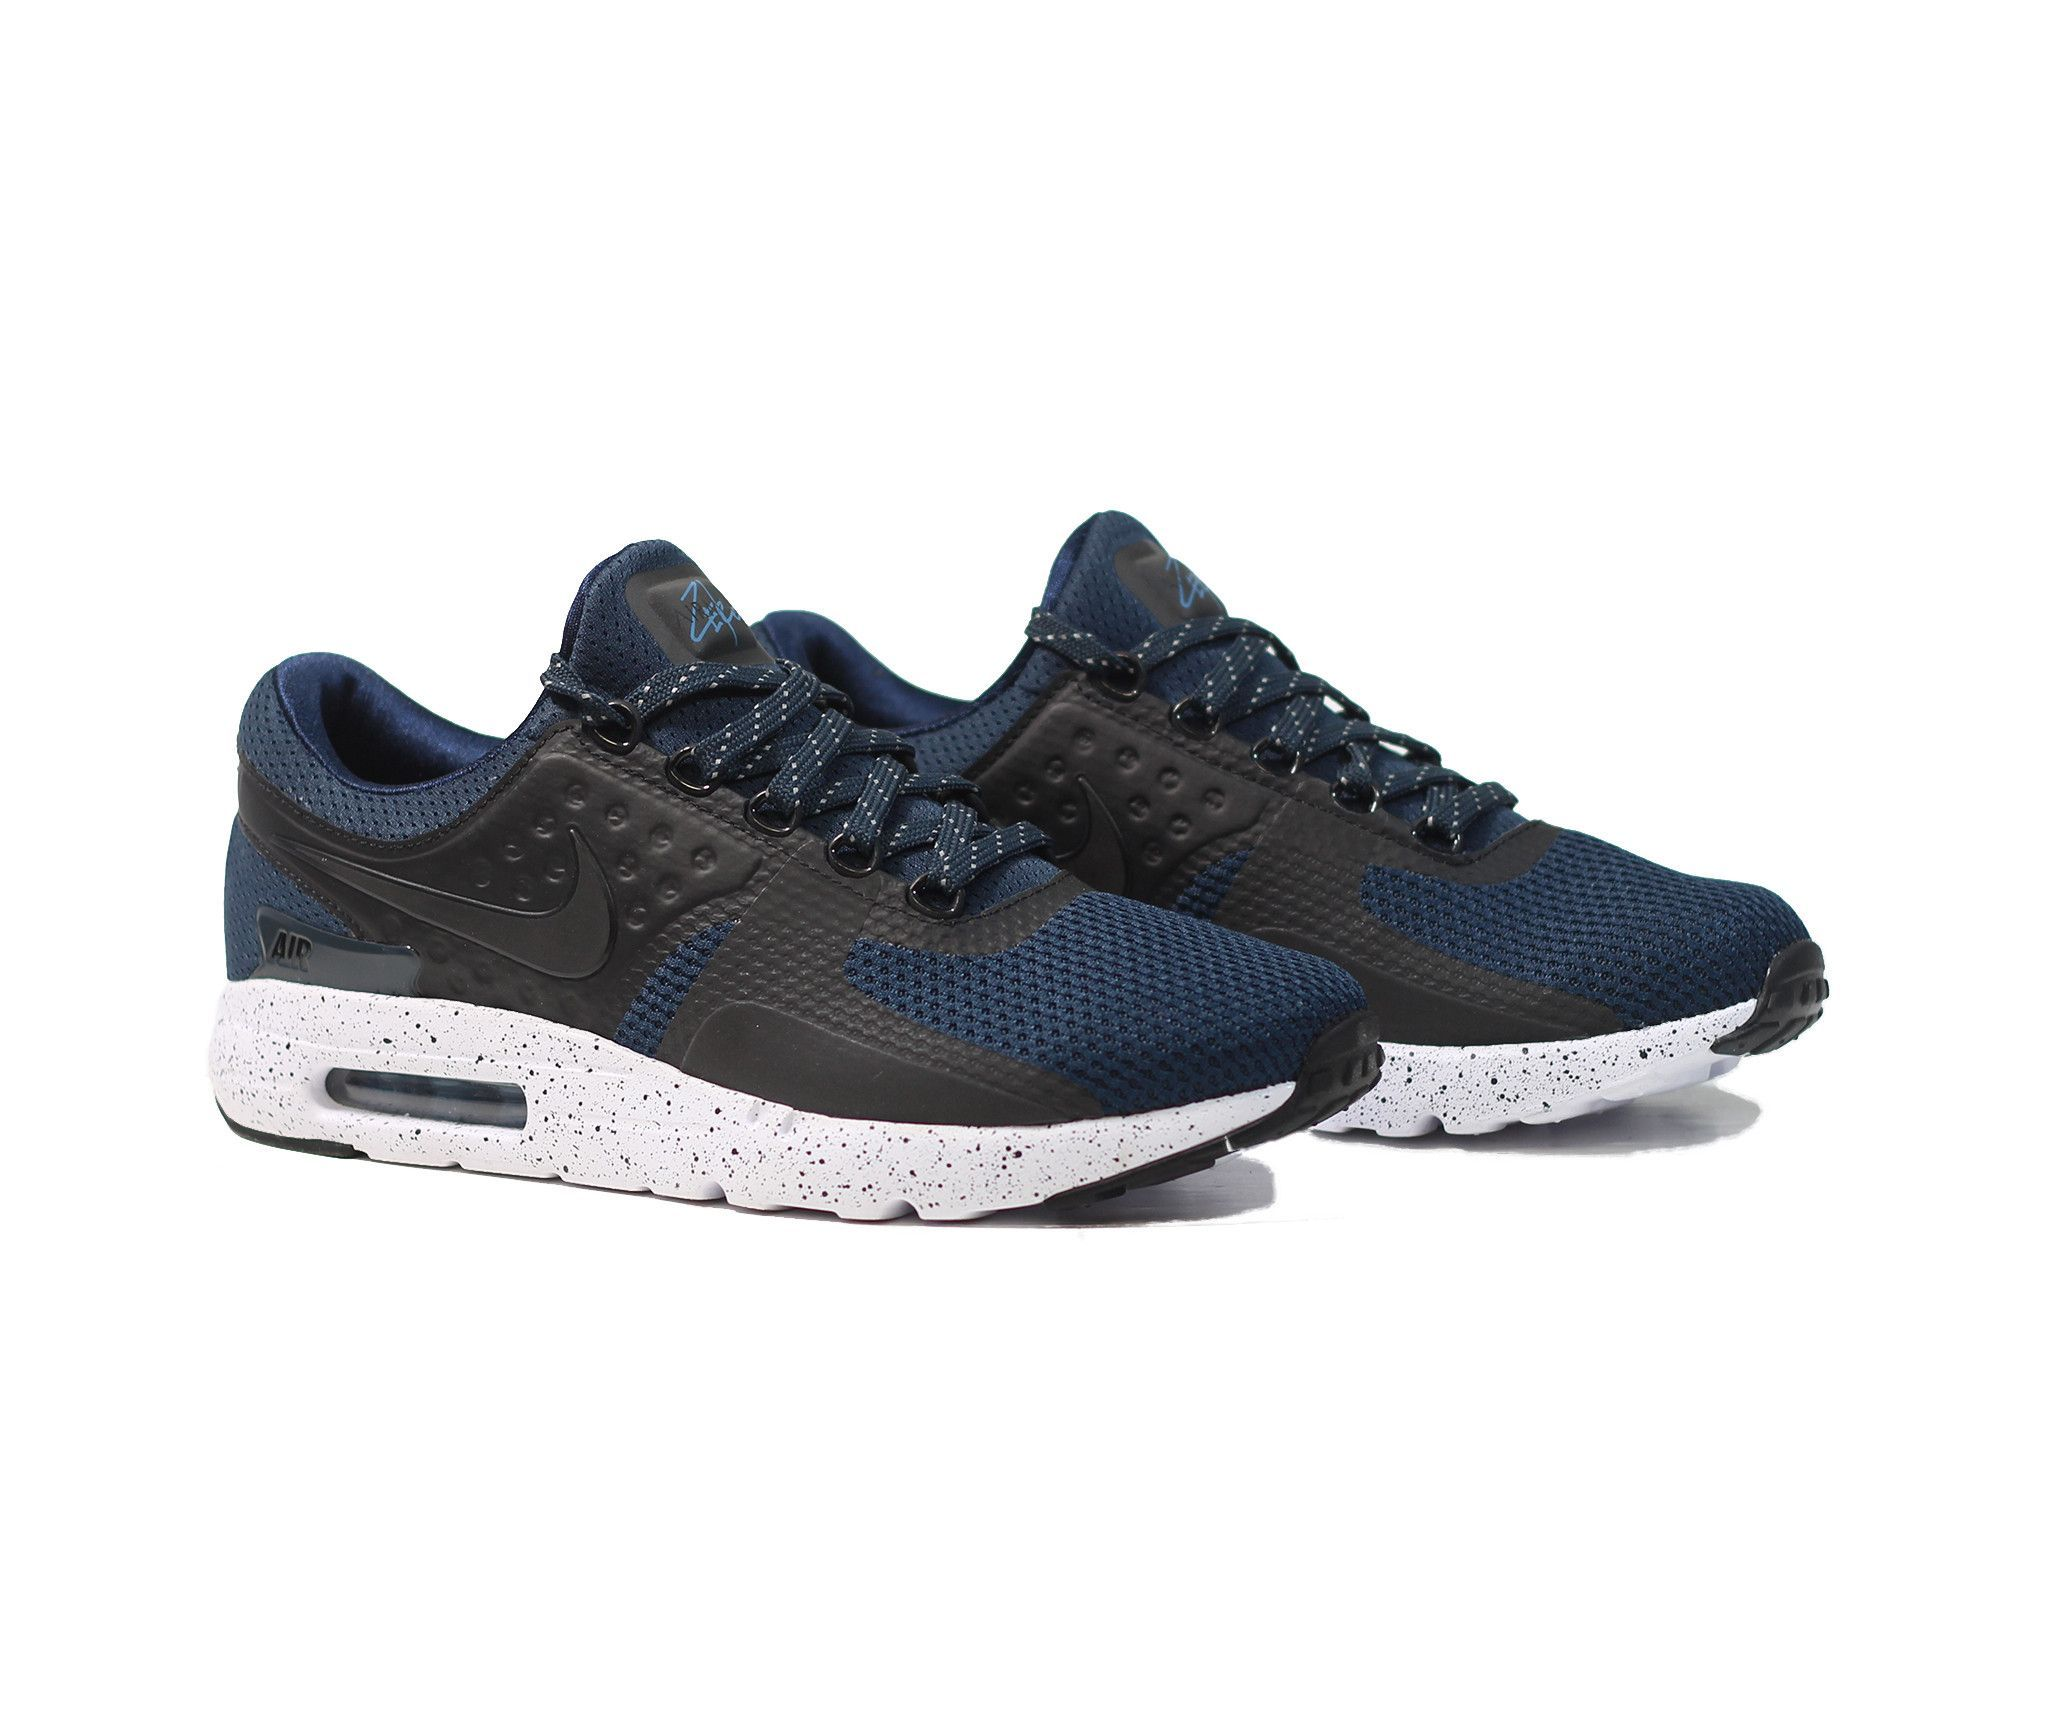 new concept eb856 6a49b NIKE Air Max Zero PRM - Armory Navy/White/Industrial Blue ...